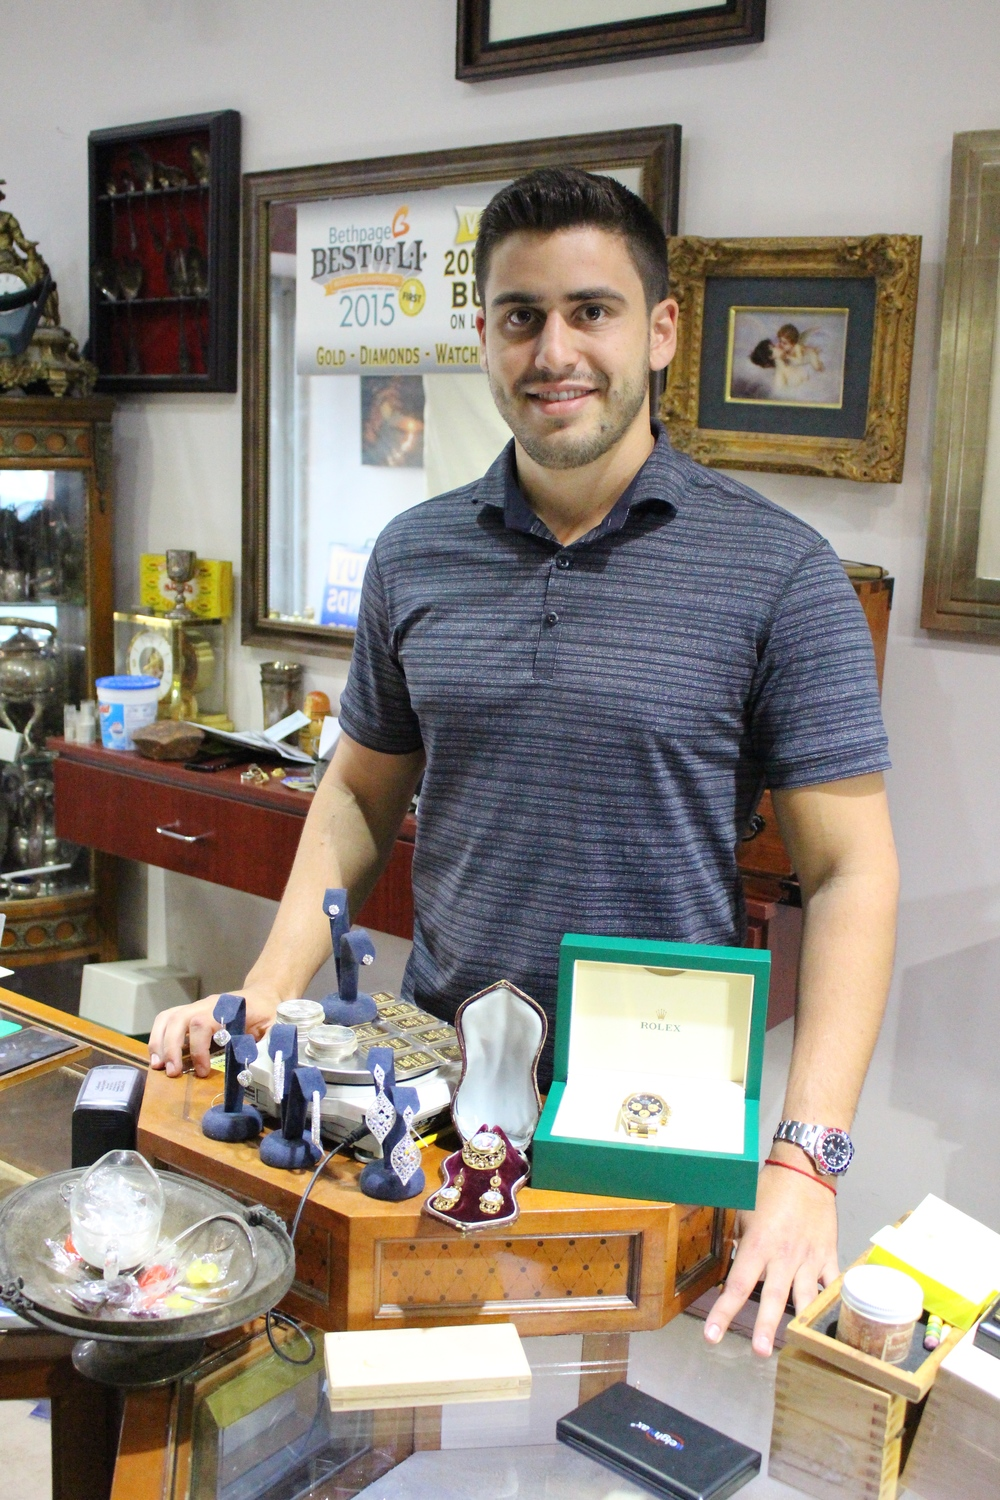 Arthur Buz, owner of Collectors Coins & Jewelry in Huntington, who also serves as the stores on-site gemologist and numismatist, says knowledge is very important to the business.